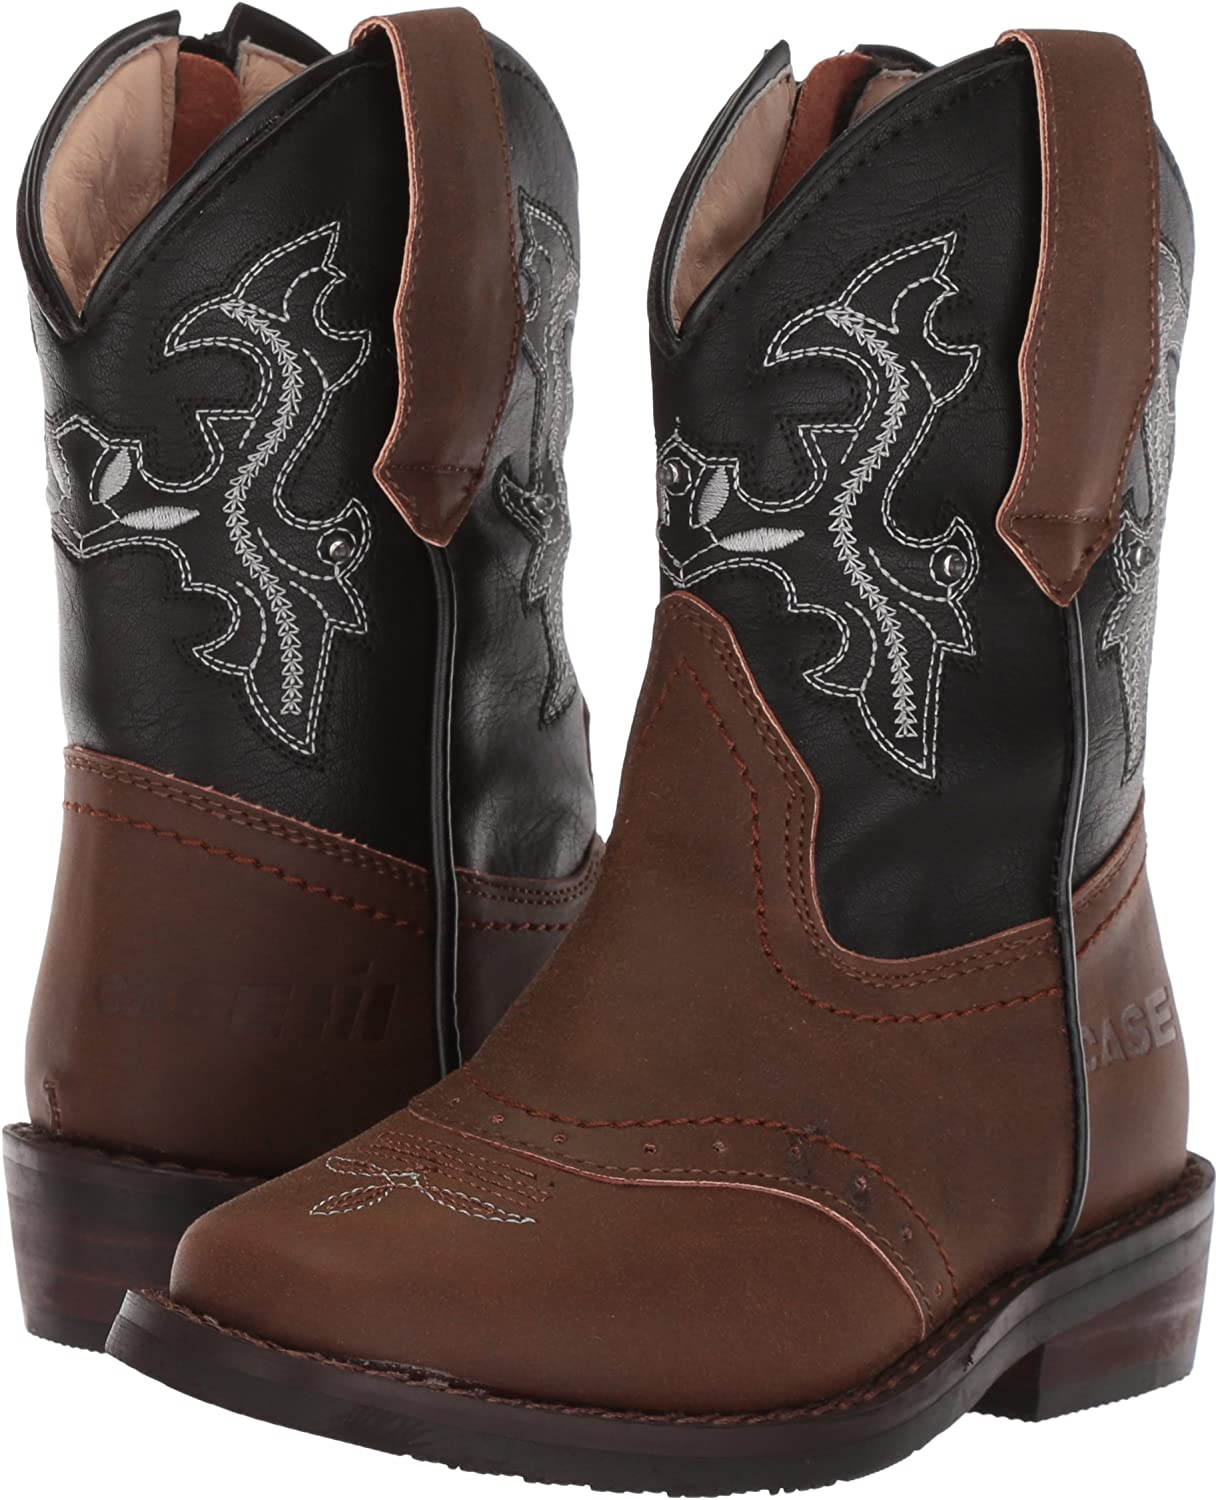 Ad Tec Cute Kids Western Boot Boys Classic Rodeo Pointed Toe